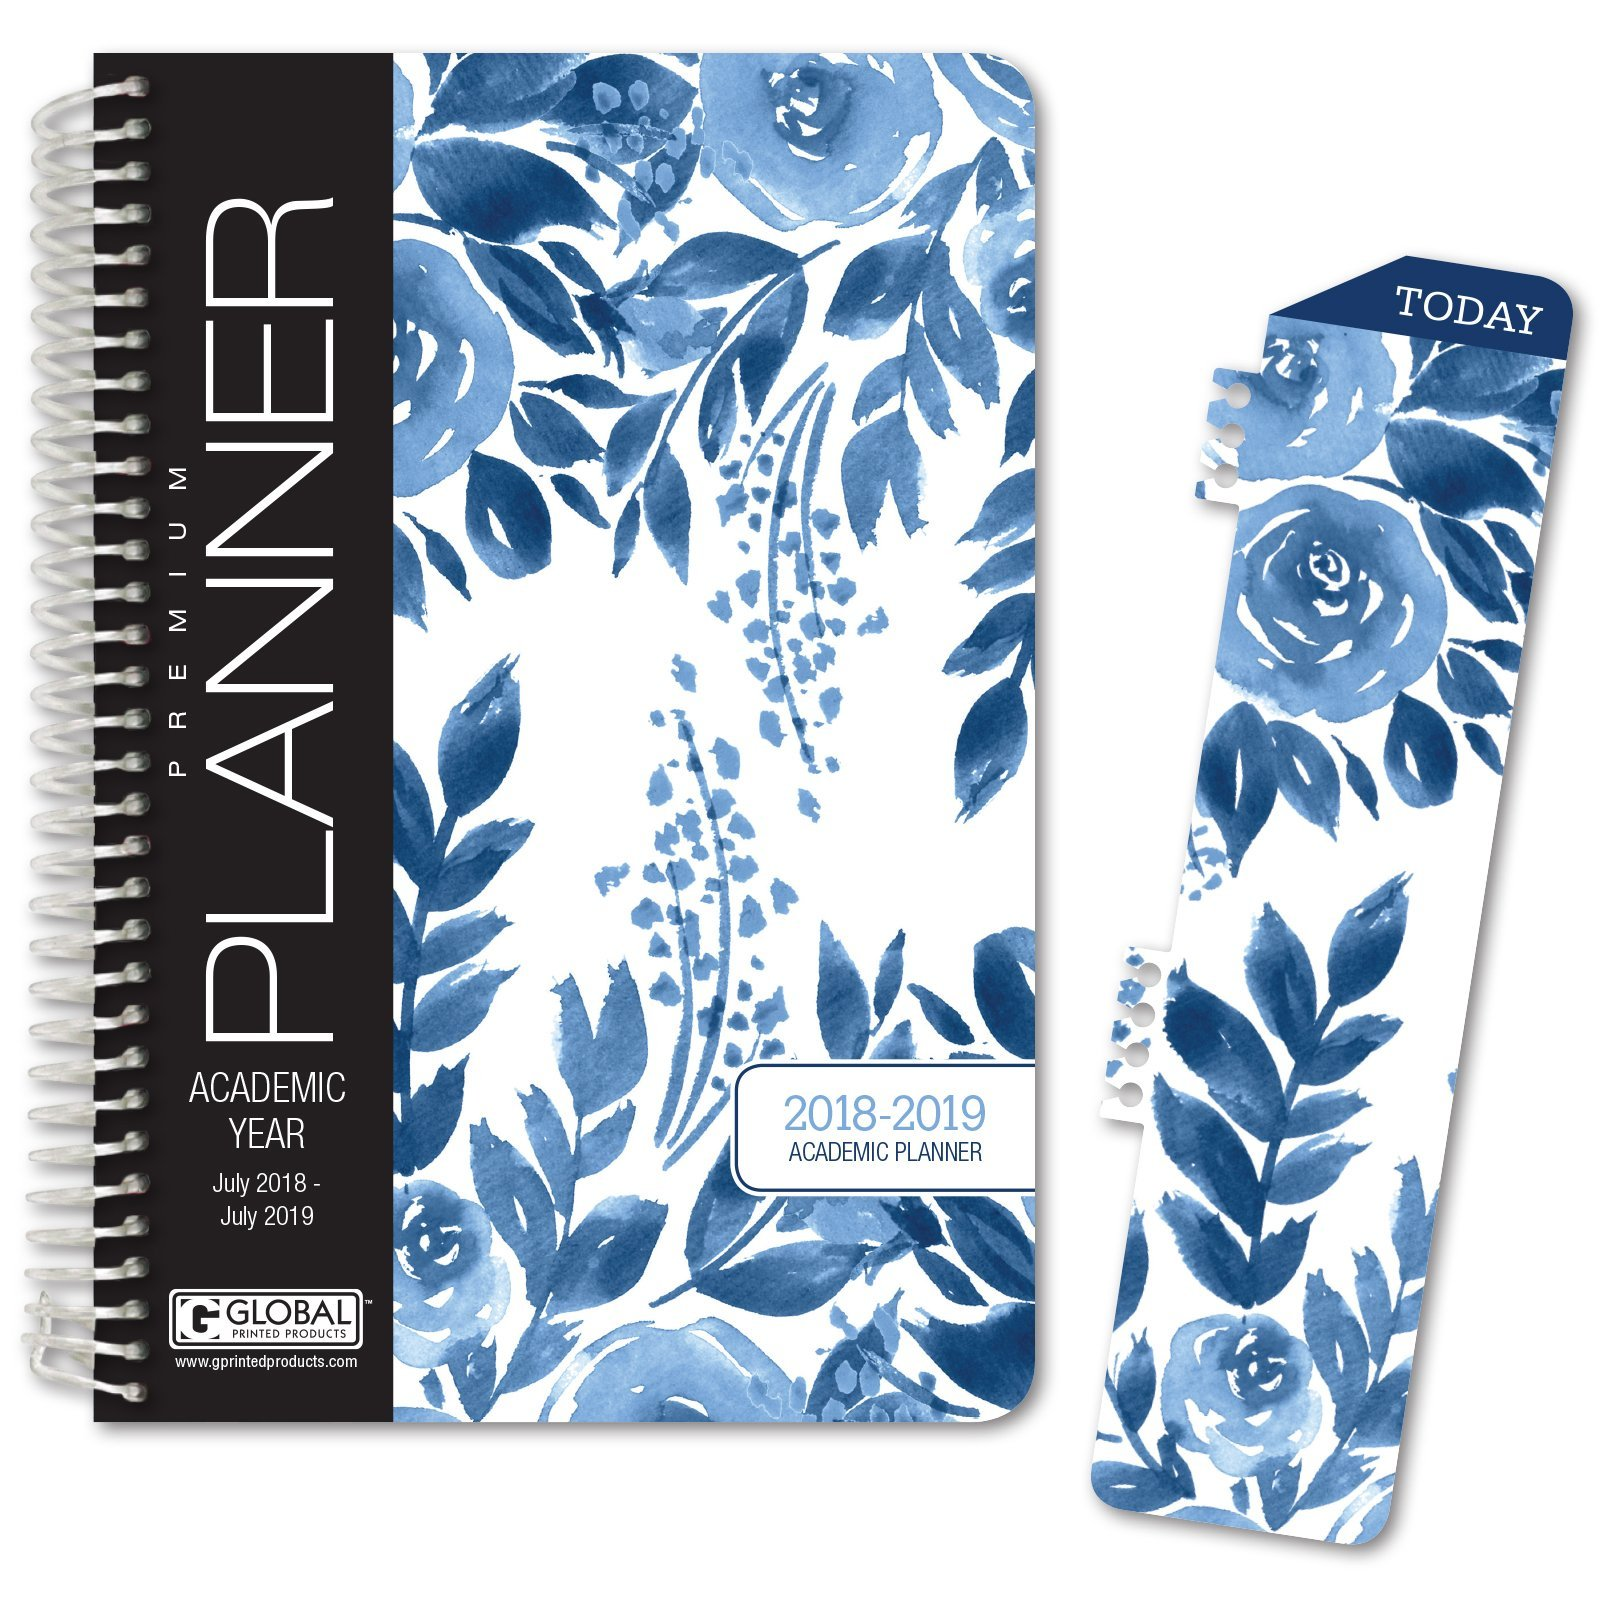 HARDCOVER Academic Year Planner 2018-2019 - 5.5''x8'' Daily Planner/Weekly Planner/Monthly Planner/Yearly Agenda. Bonus Bookmark (Blue Bloom)